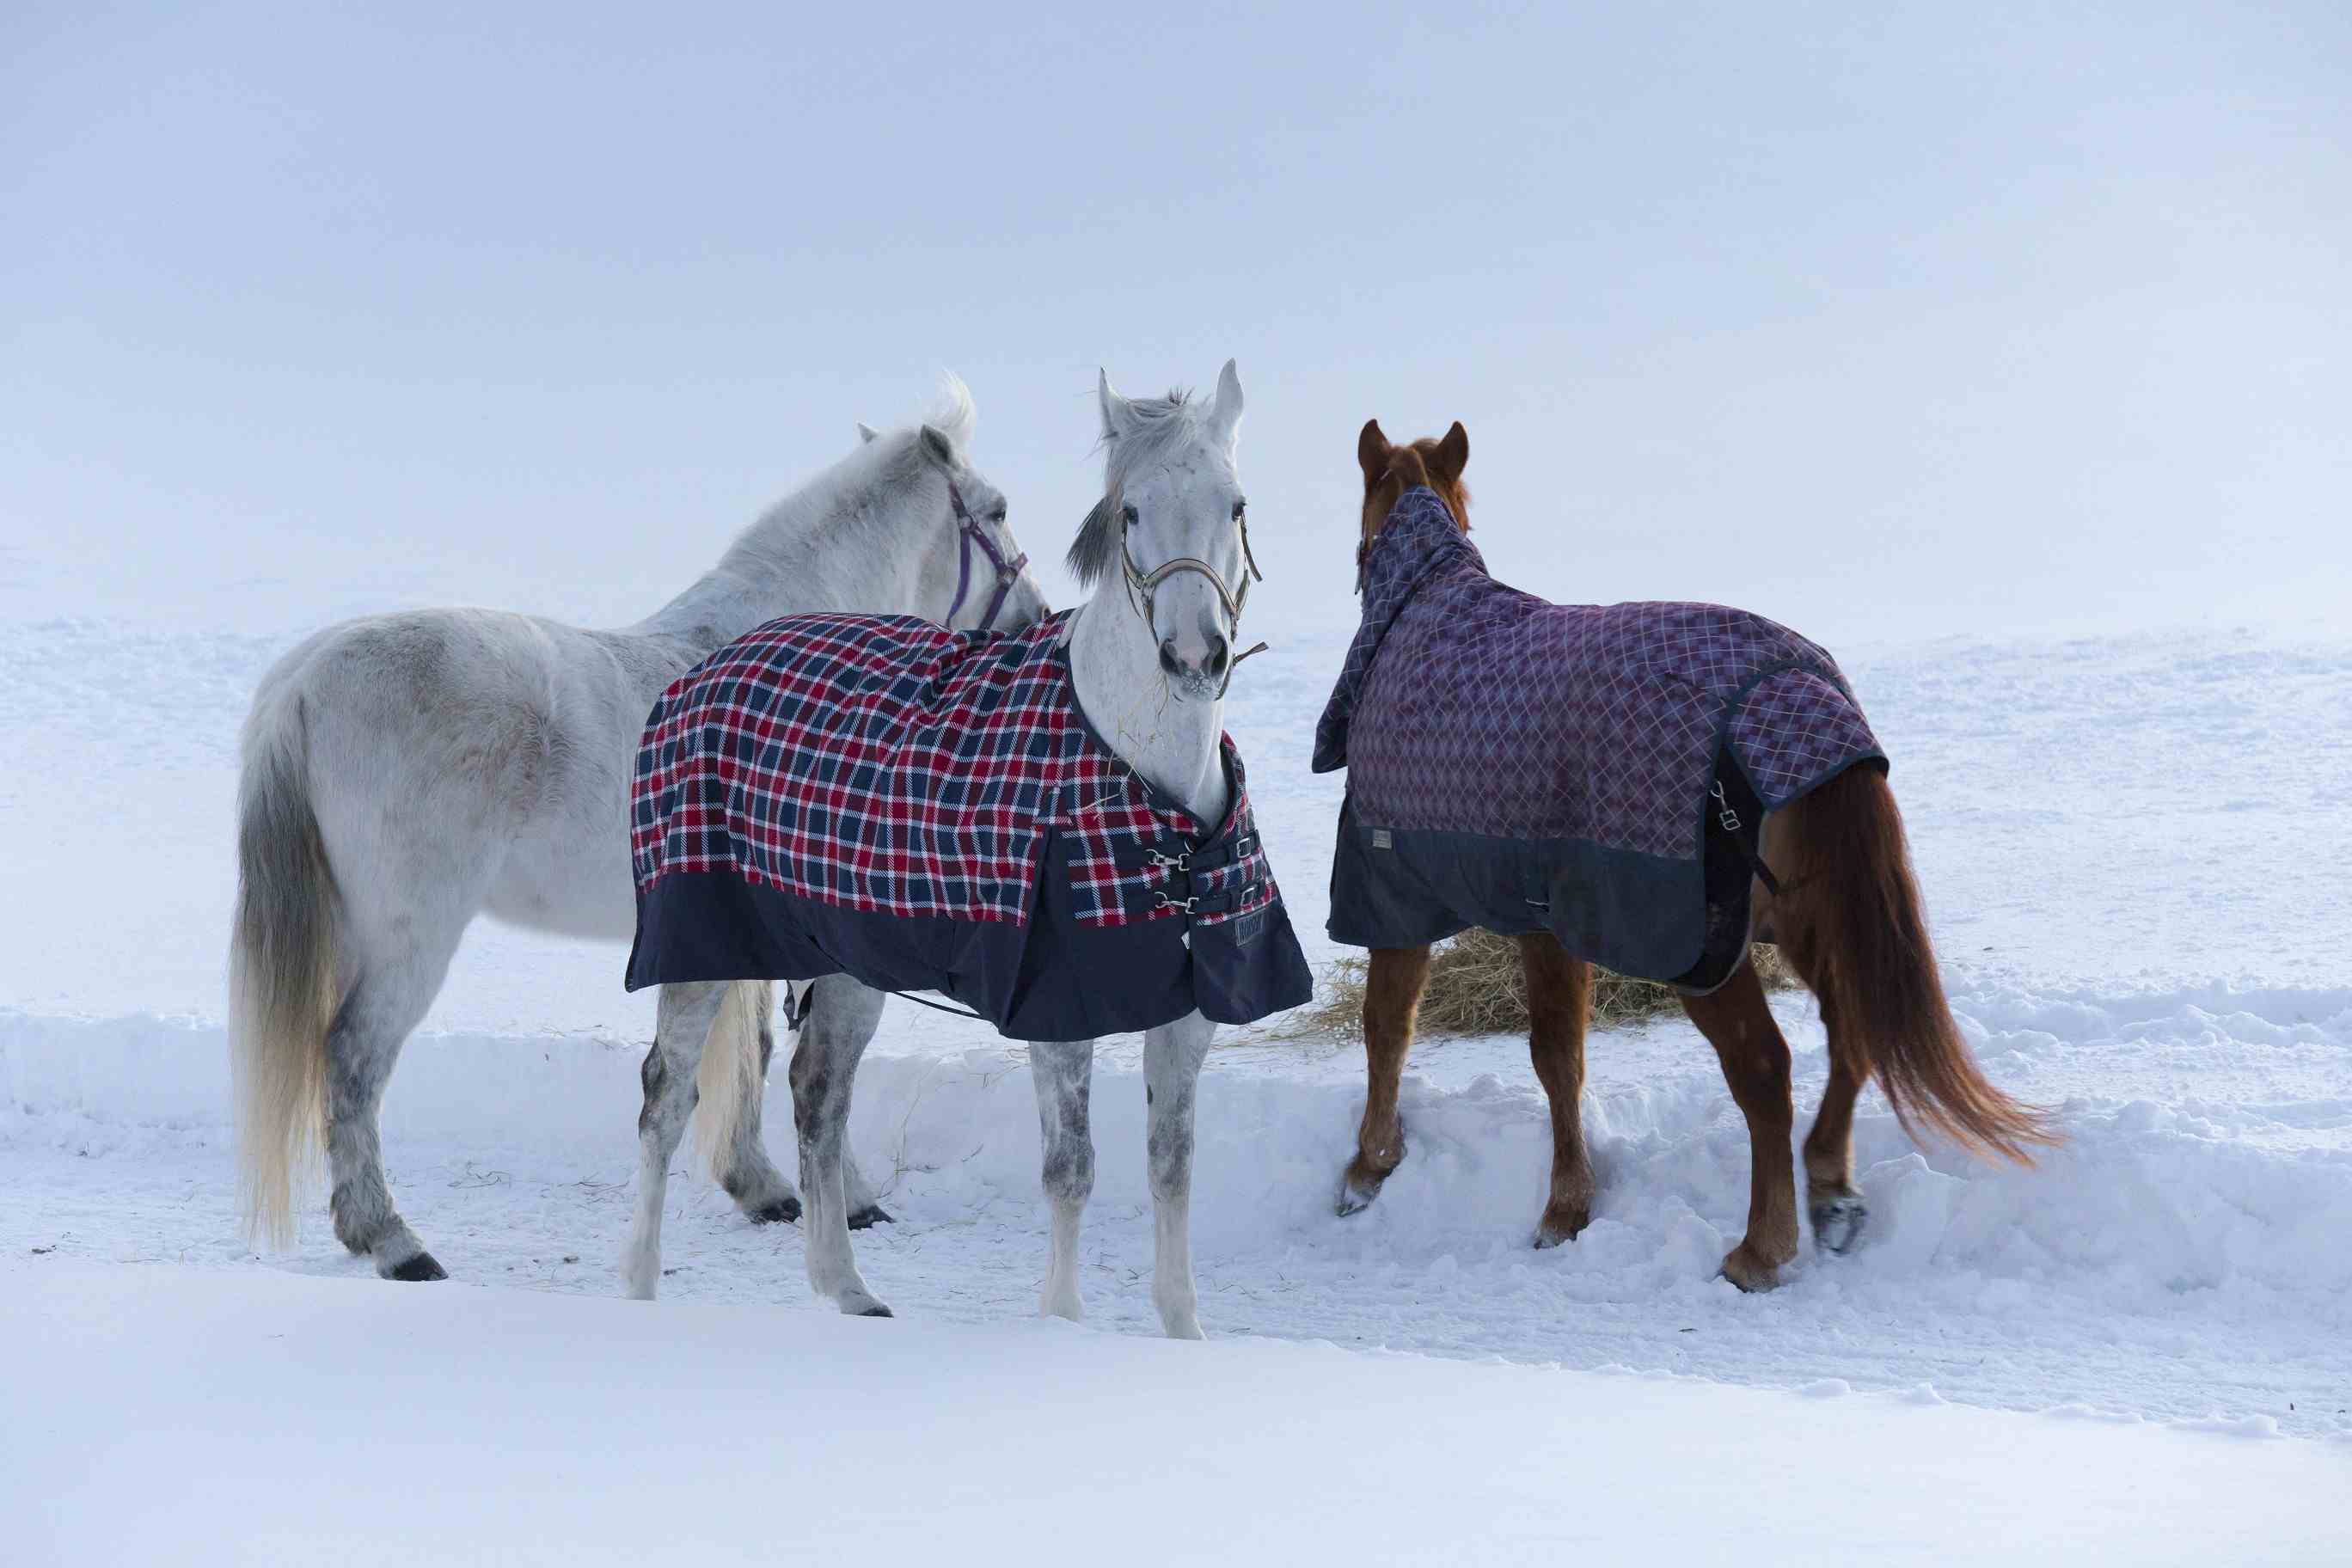 Horses bundled up